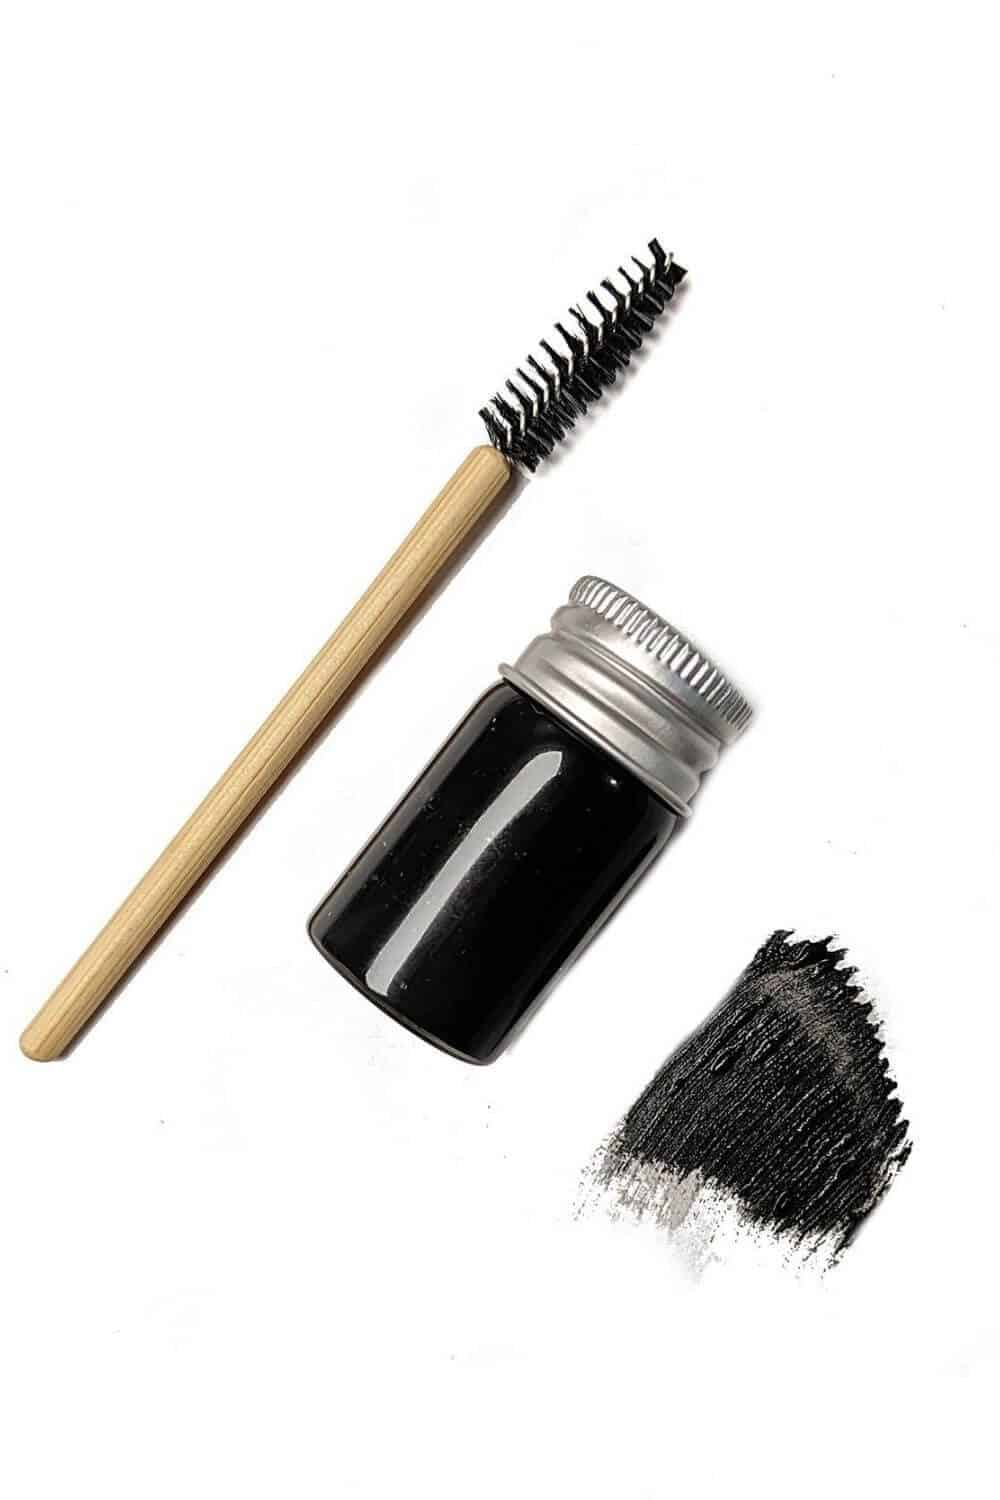 Zero waste looks good on everyone, just like long lashes! Lucky for us, the two aren't mutually exclusive. Here's a list of our favourite zero waste options Image by Clean Faced Cosmetics #zerowastemascara #zerowaste